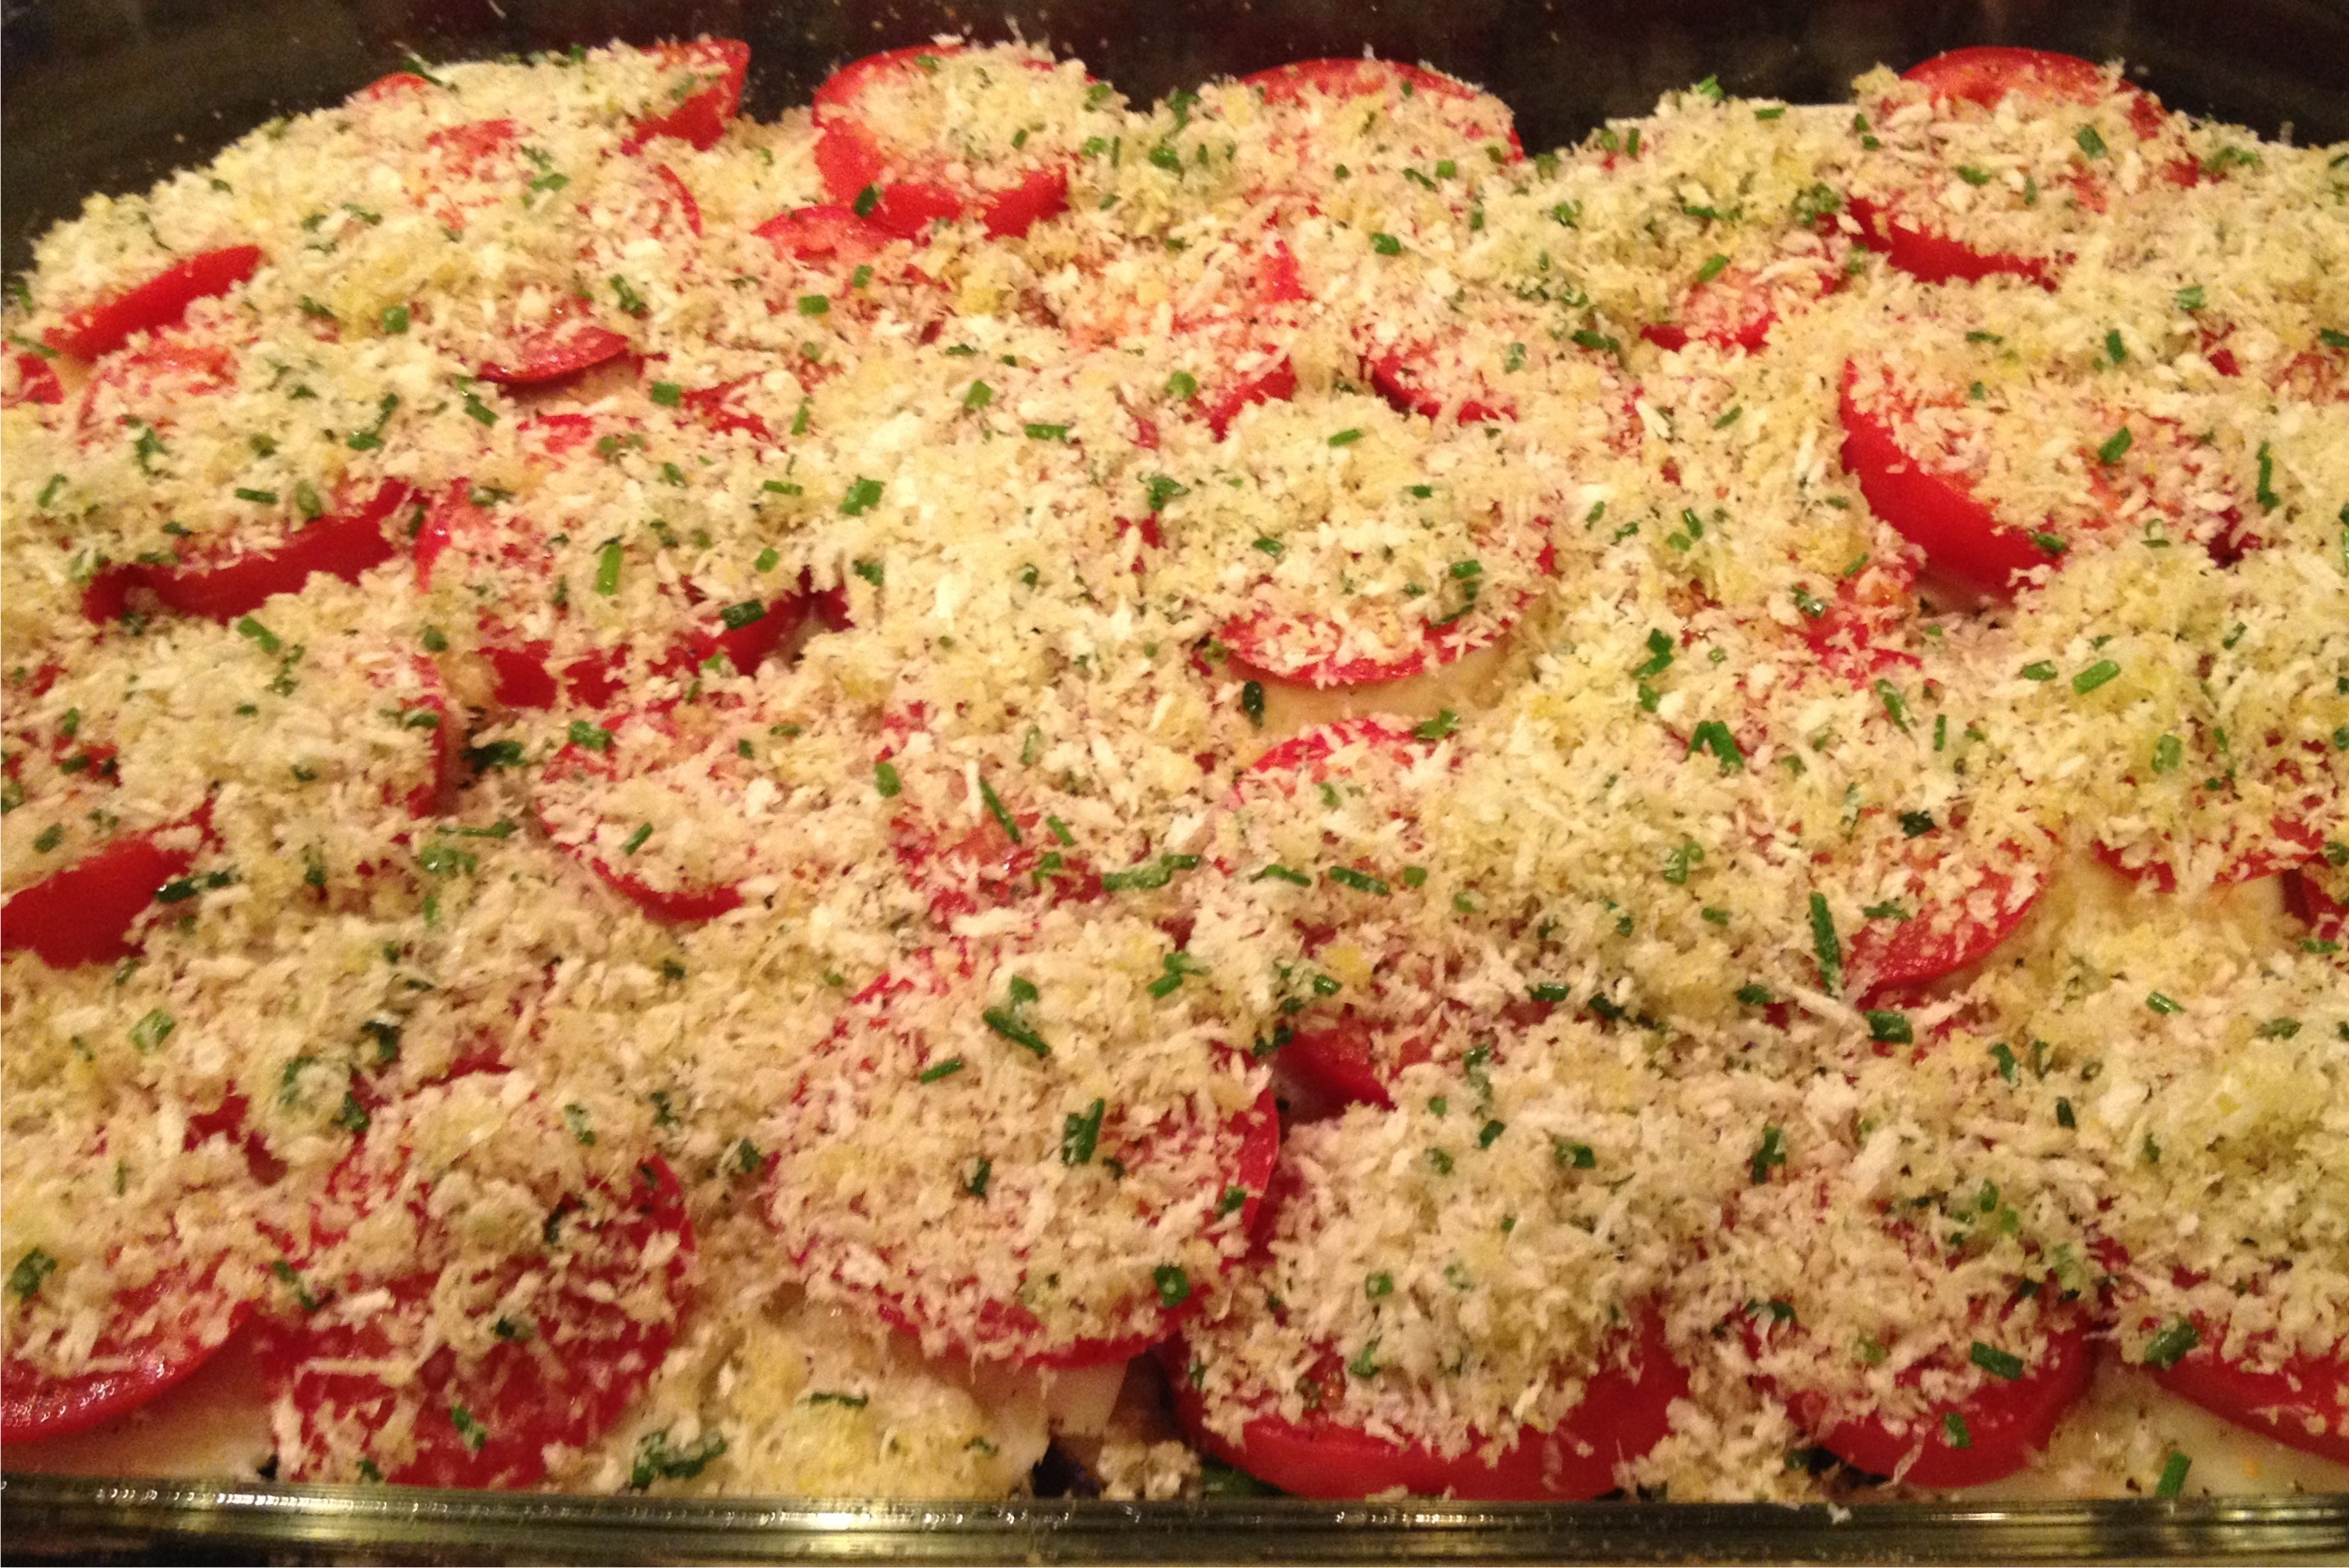 Eggplant tomato layered yum  ready for oven